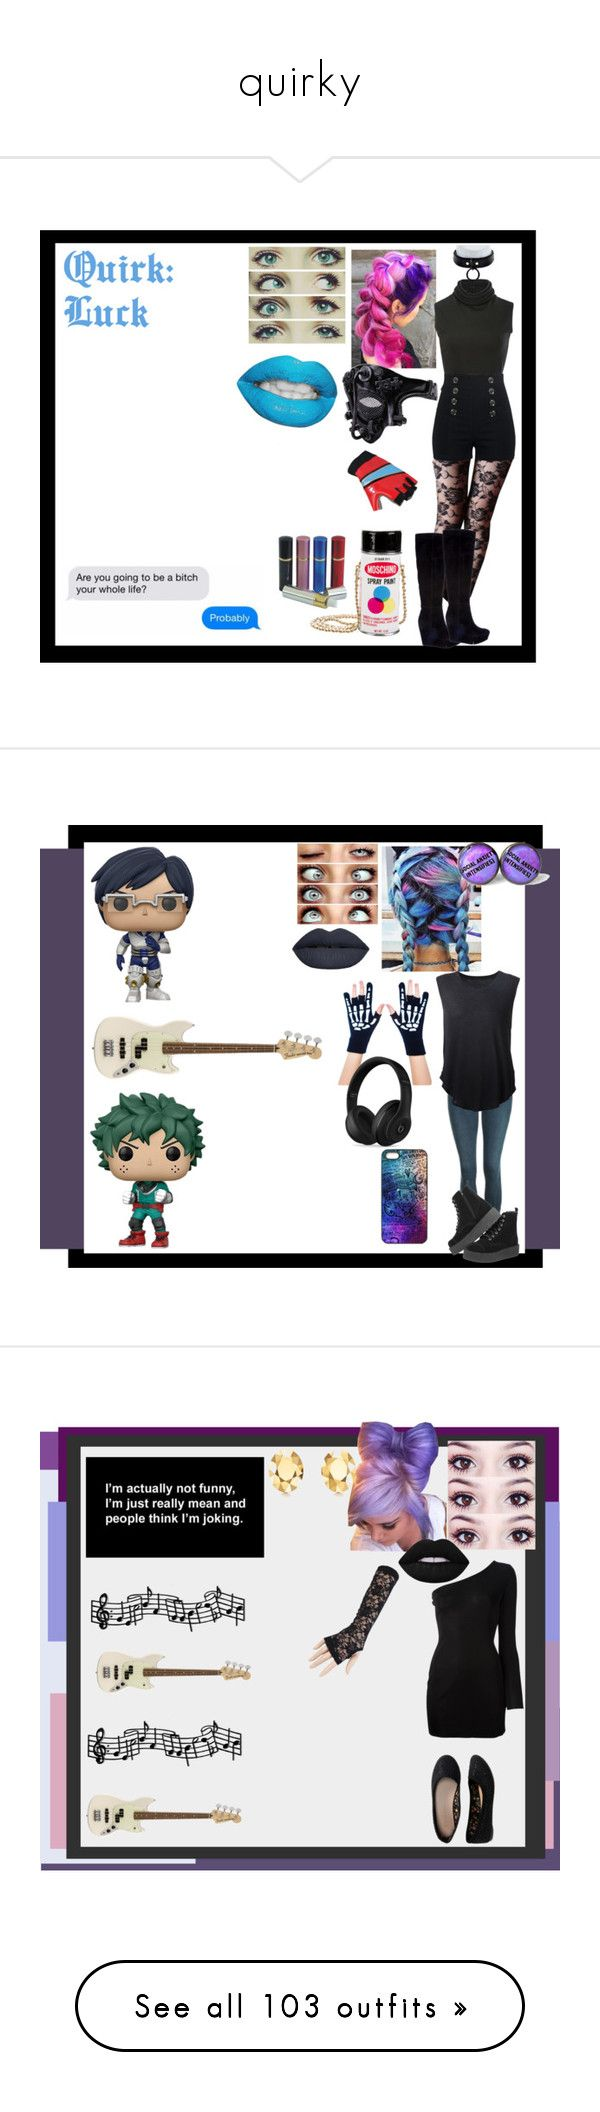 """""""quirky"""" by thin-mint on Polyvore featuring Brandon Maxwell, Moschino, ALEXA WAGNER, The Lip Bar, Topshop, Funko, T.U.K., Raquel Allegra, Too Fast and Beats by Dr. Dre"""